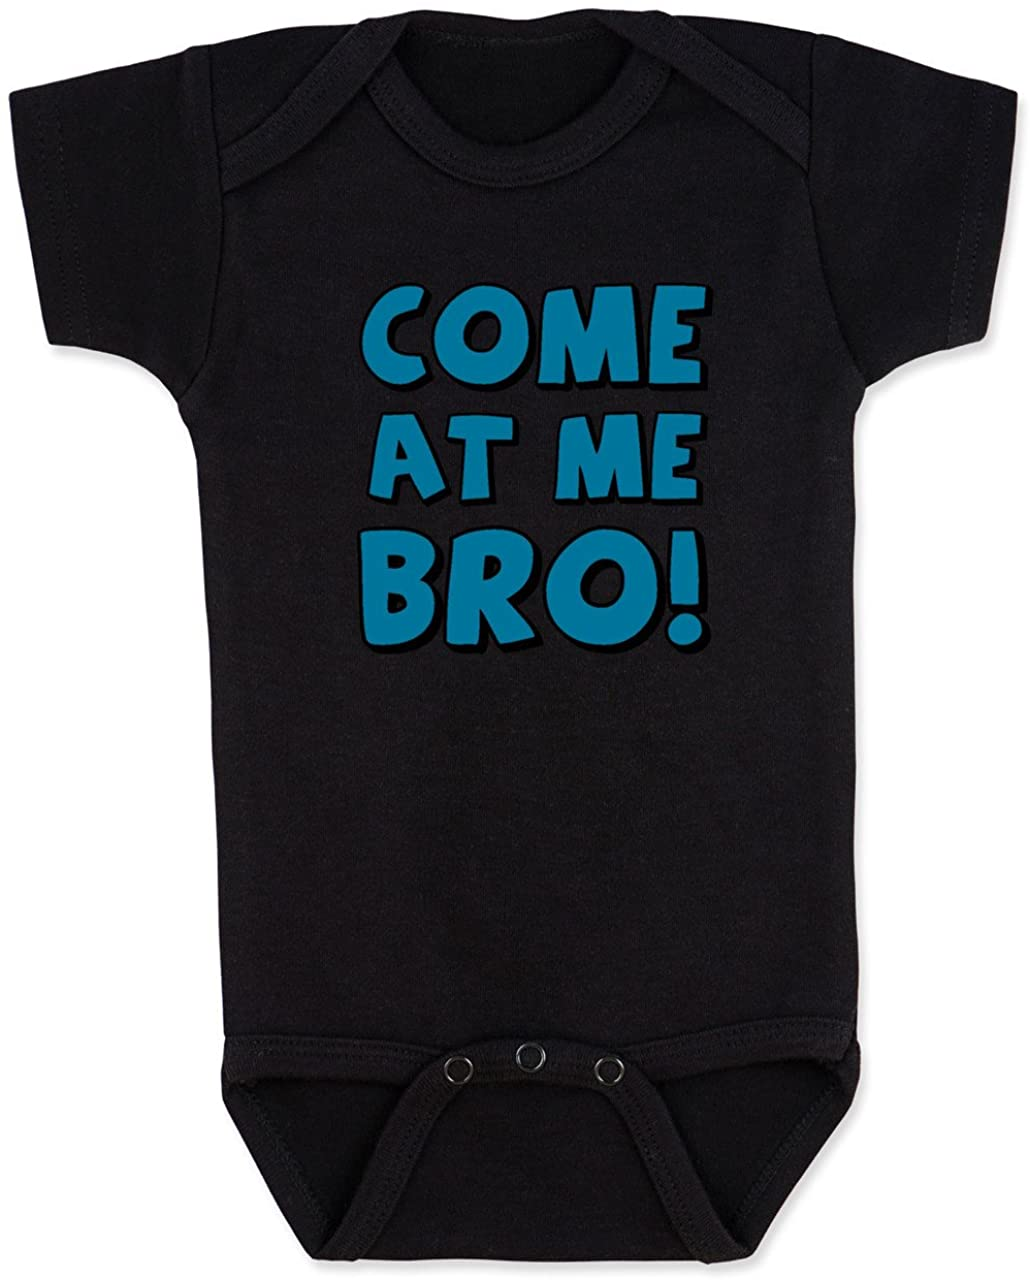 Vulgar Baby Bodysuit, Come at me Bro